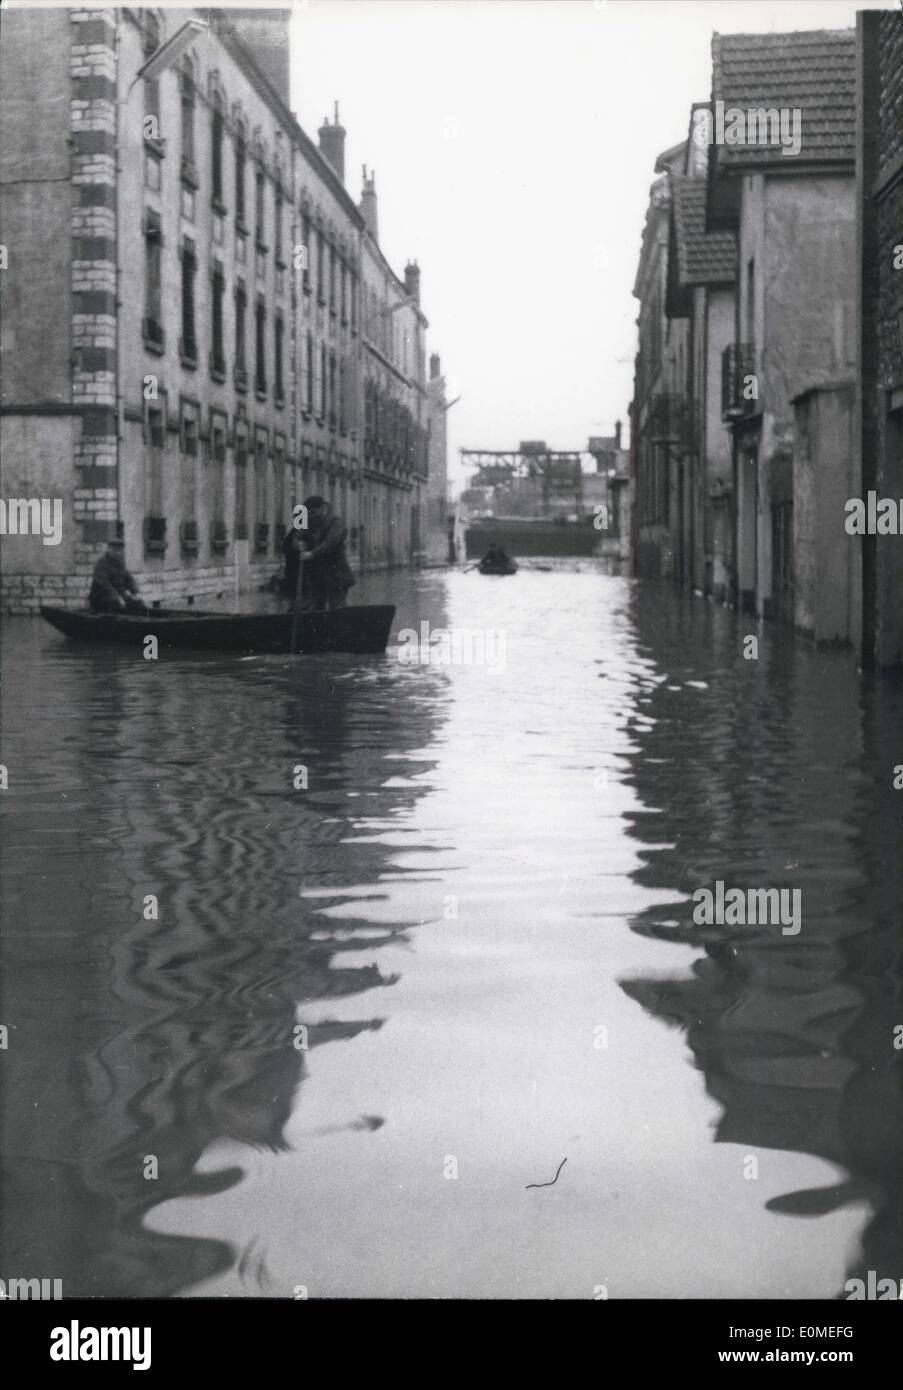 Jan. 23, 1955 - Floods in Paris. One of the Paris Suburbs completely flooded as a result of the Overflow of the seine. Inhabitants move about in boats. - Stock Image